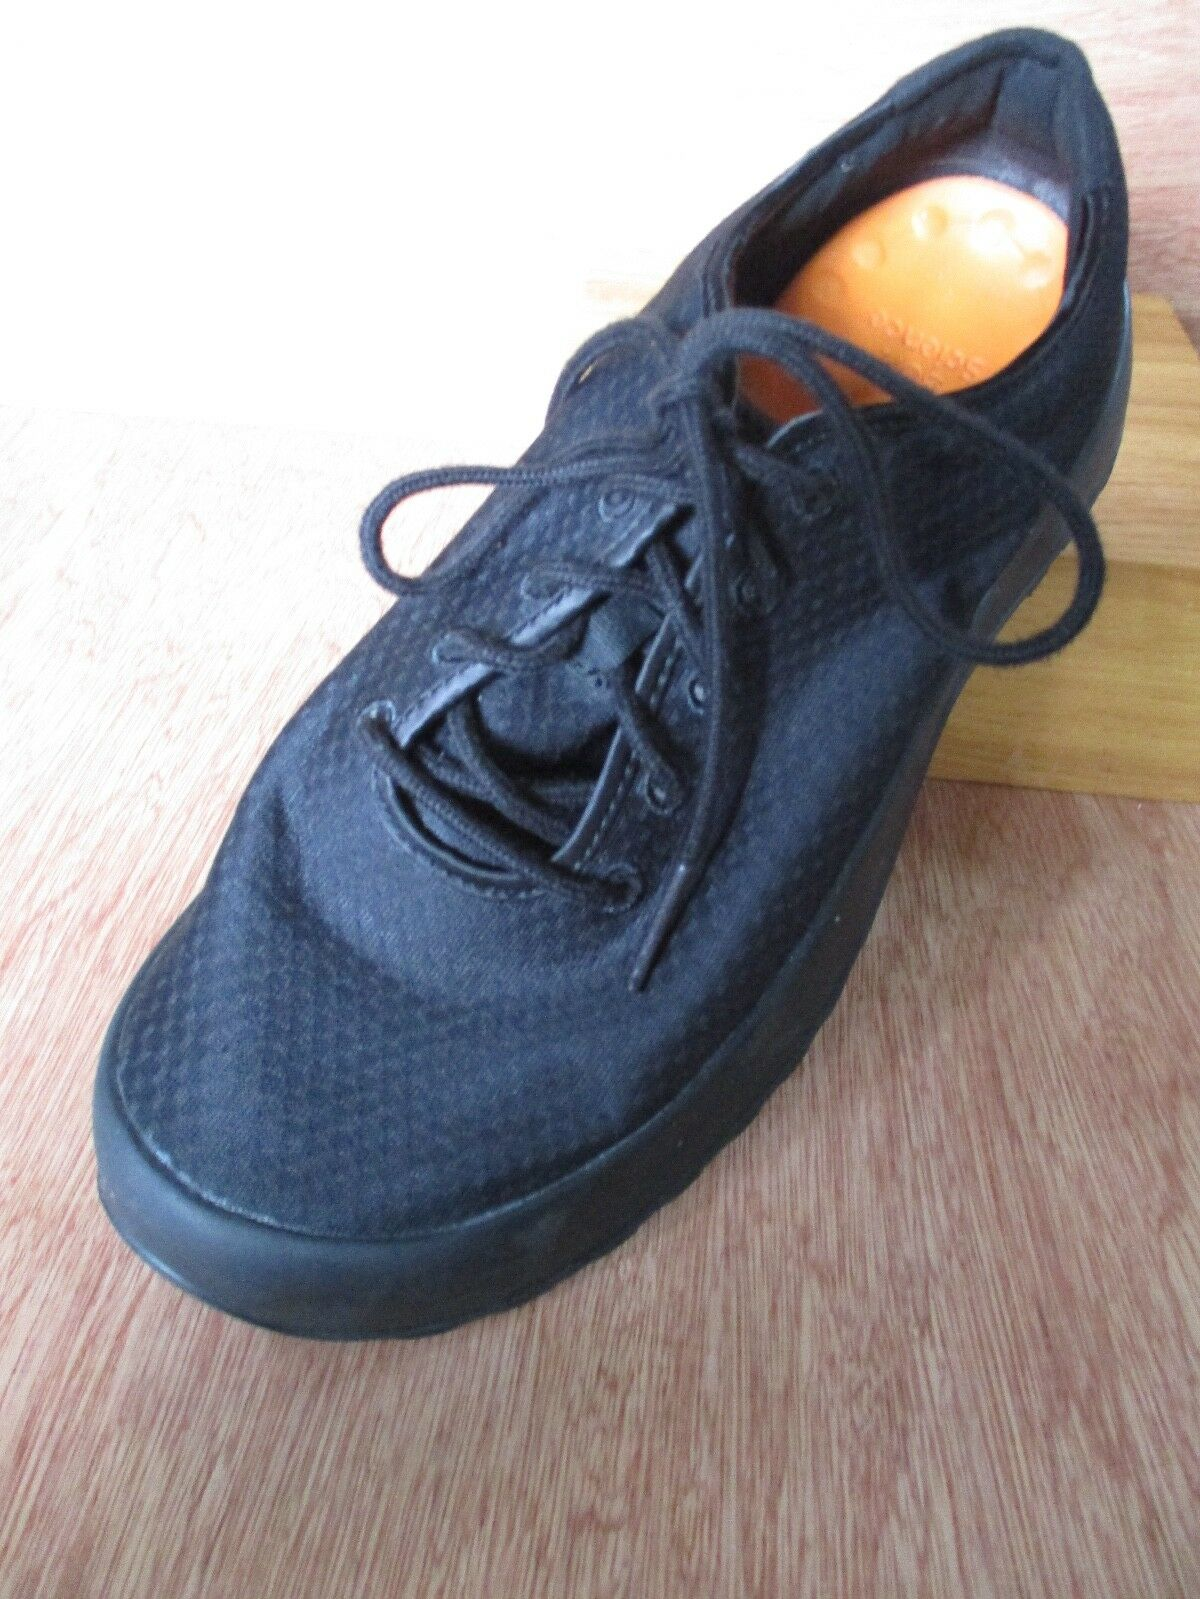 Soft Science worn once black nylon lace up comfort shoes 41 42 9